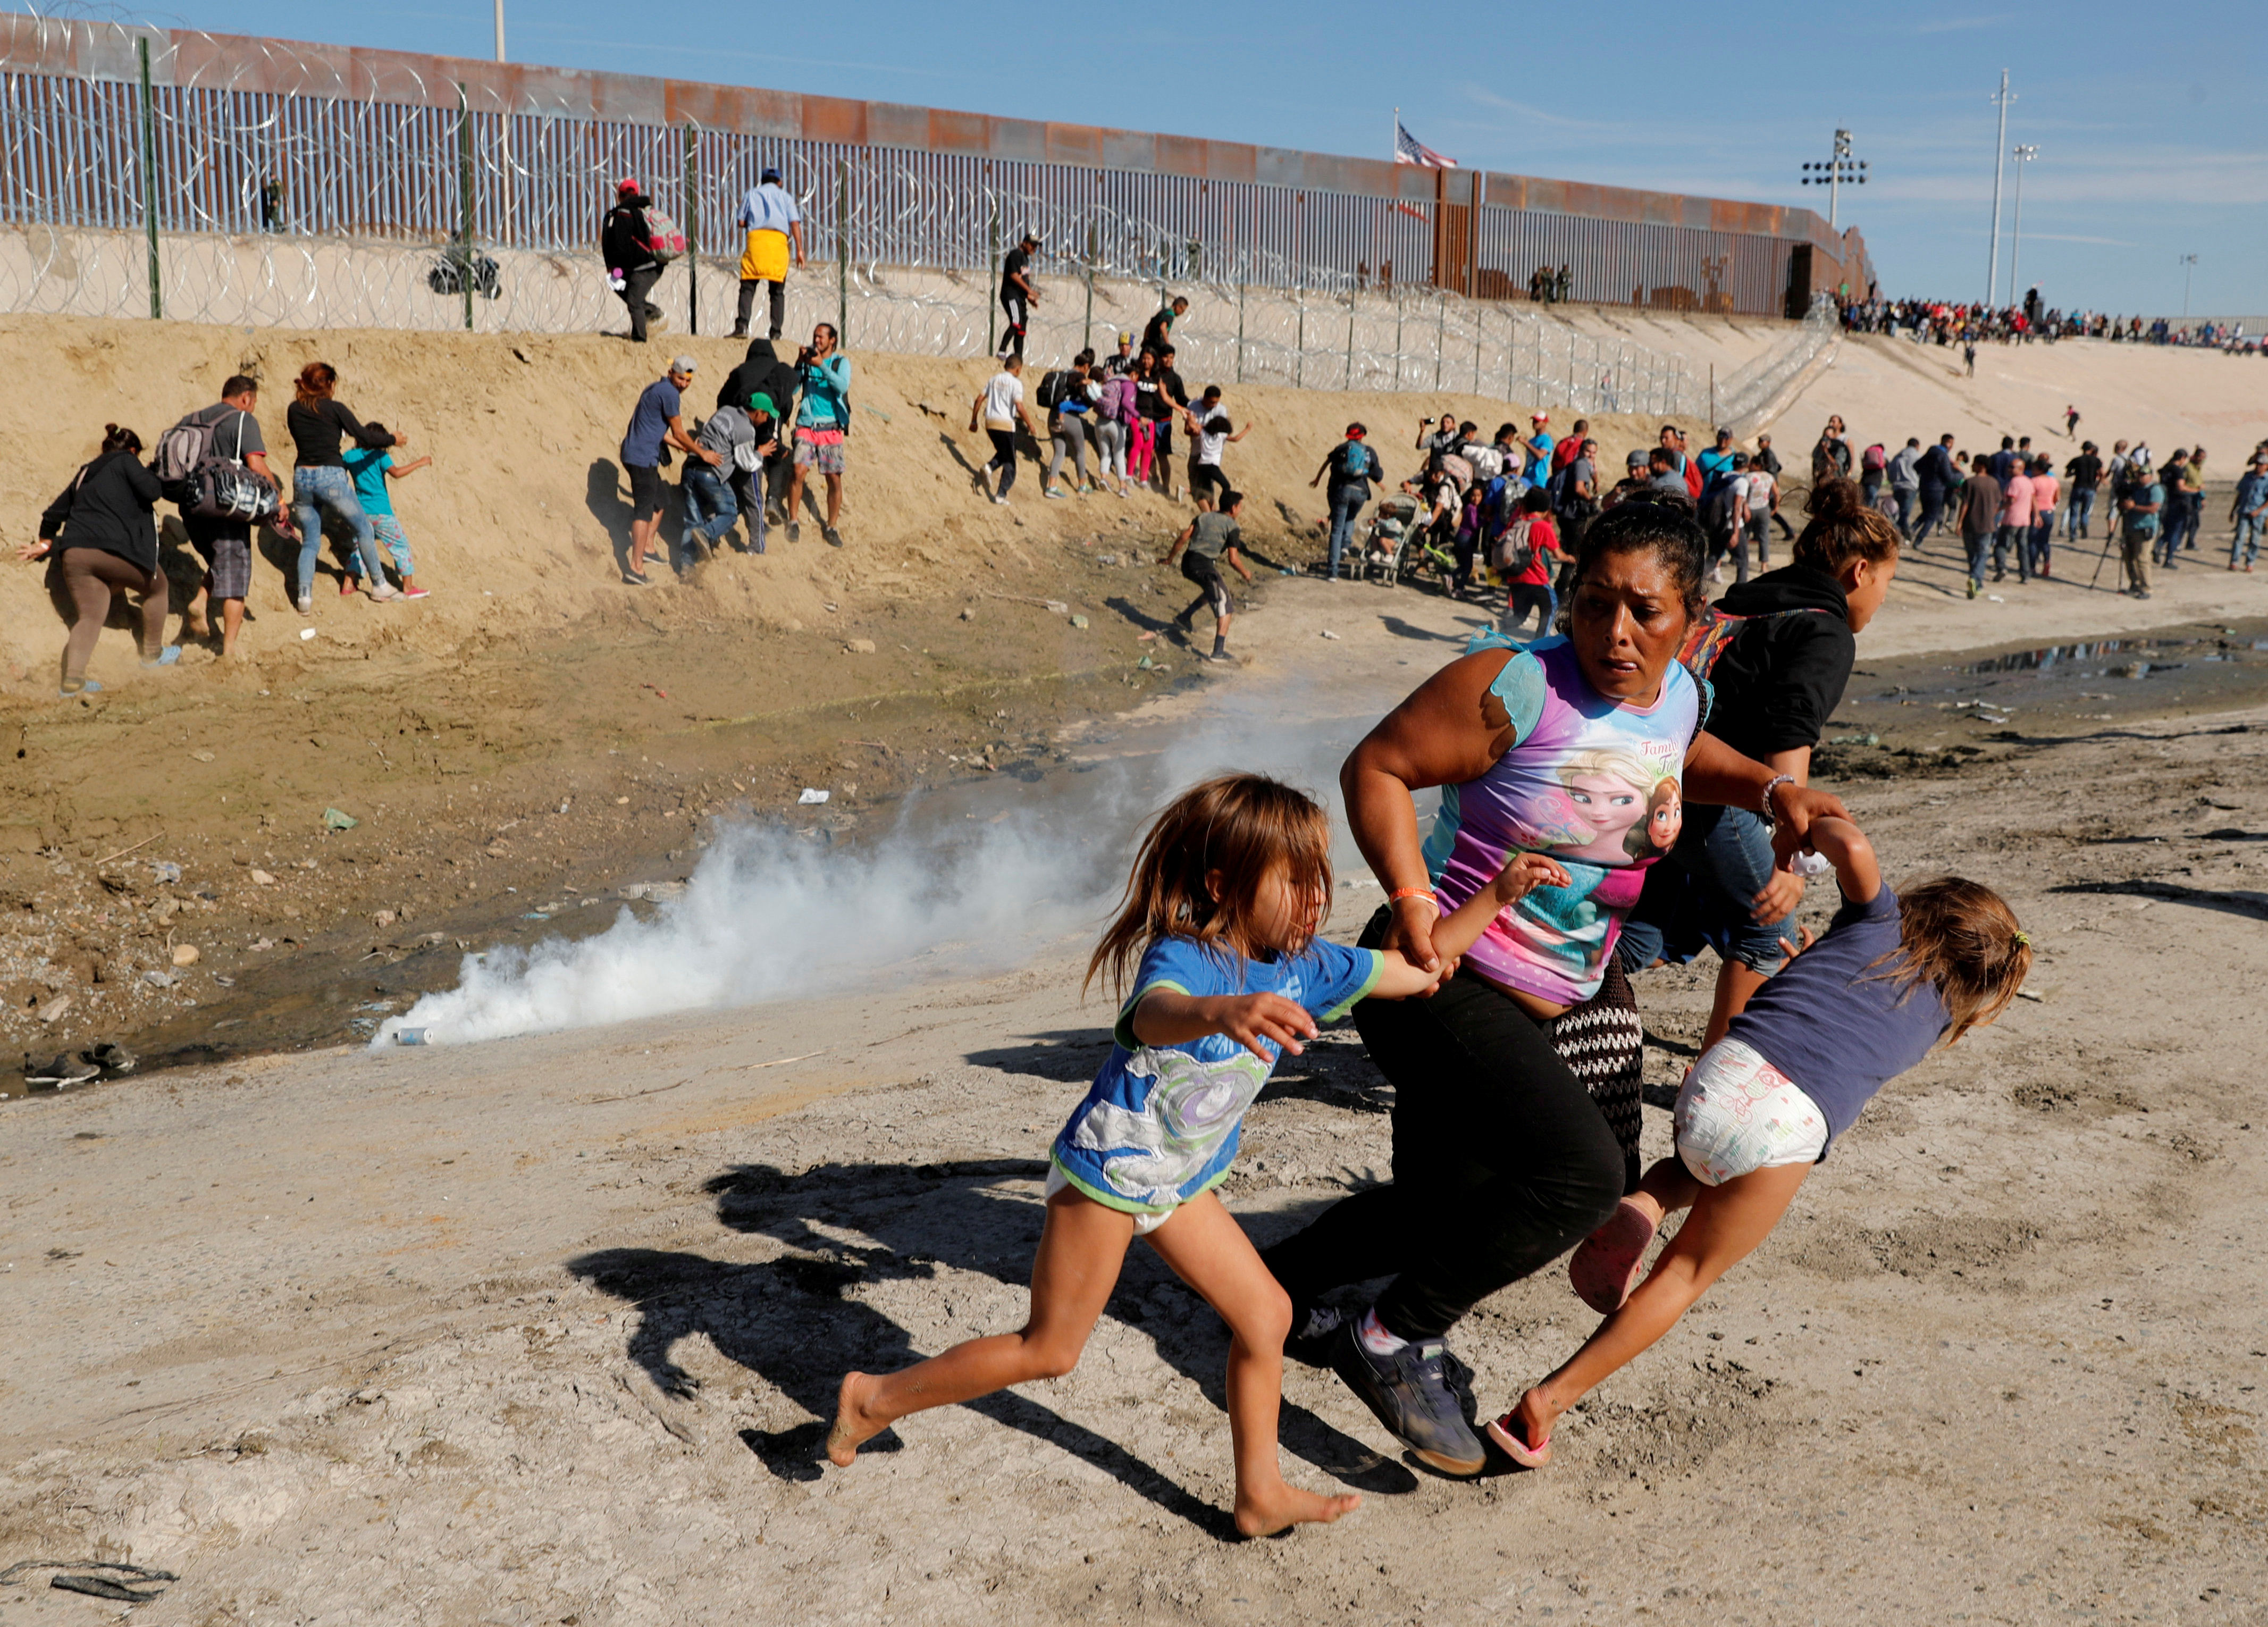 On Oct. 13, between 5,000 and 7,000 Hondurans and other Central Americans started walking toward the United States, hoping for asylum. They reached the U.S.-Mexico border in mid-November. In this photo, María Lila Meza Castro, a 39-year-old migrant woman from Honduras, runs from tear gas with her twin daughters in front of the border wall between the U.S. and Mexico. (Kim Kyung-Hoon/Reuters)